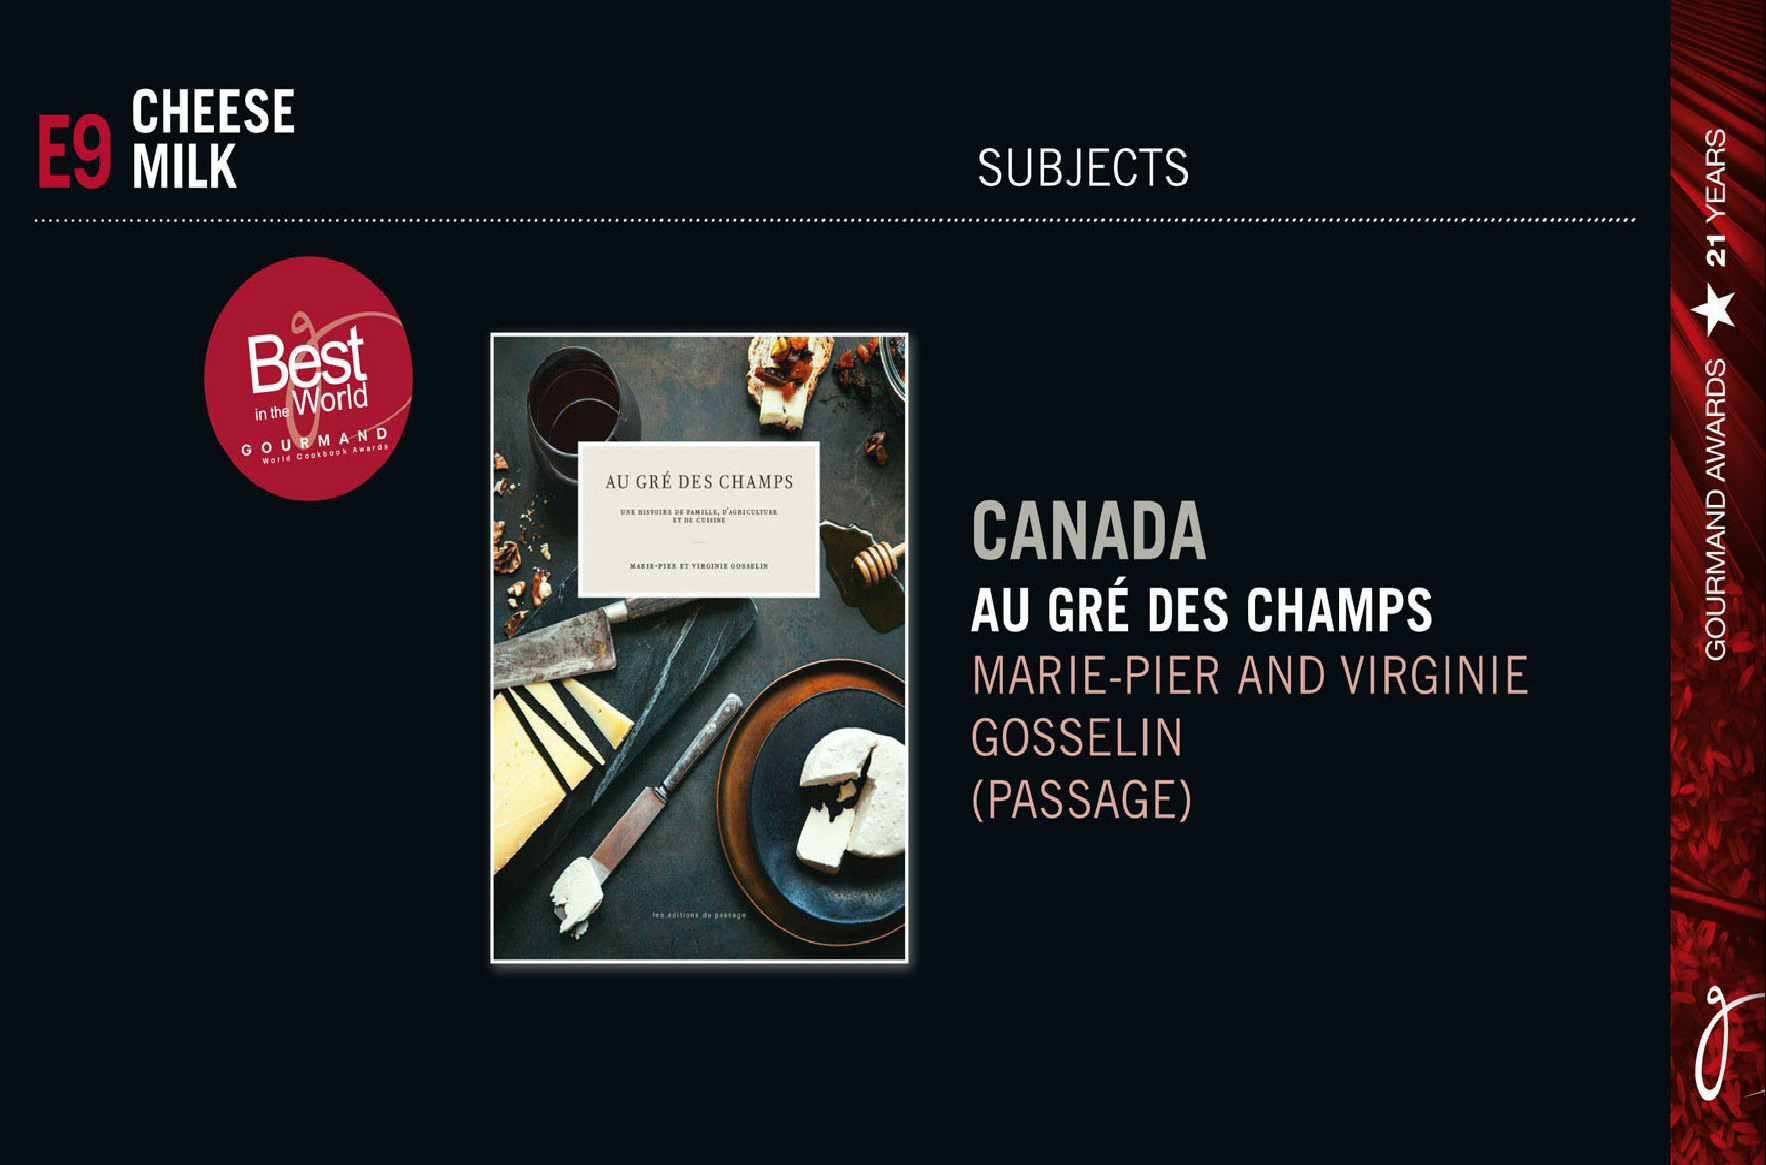 AU GRÉ DES CHAMPS remporte un Gourmand World Cookbook Award 2016 !